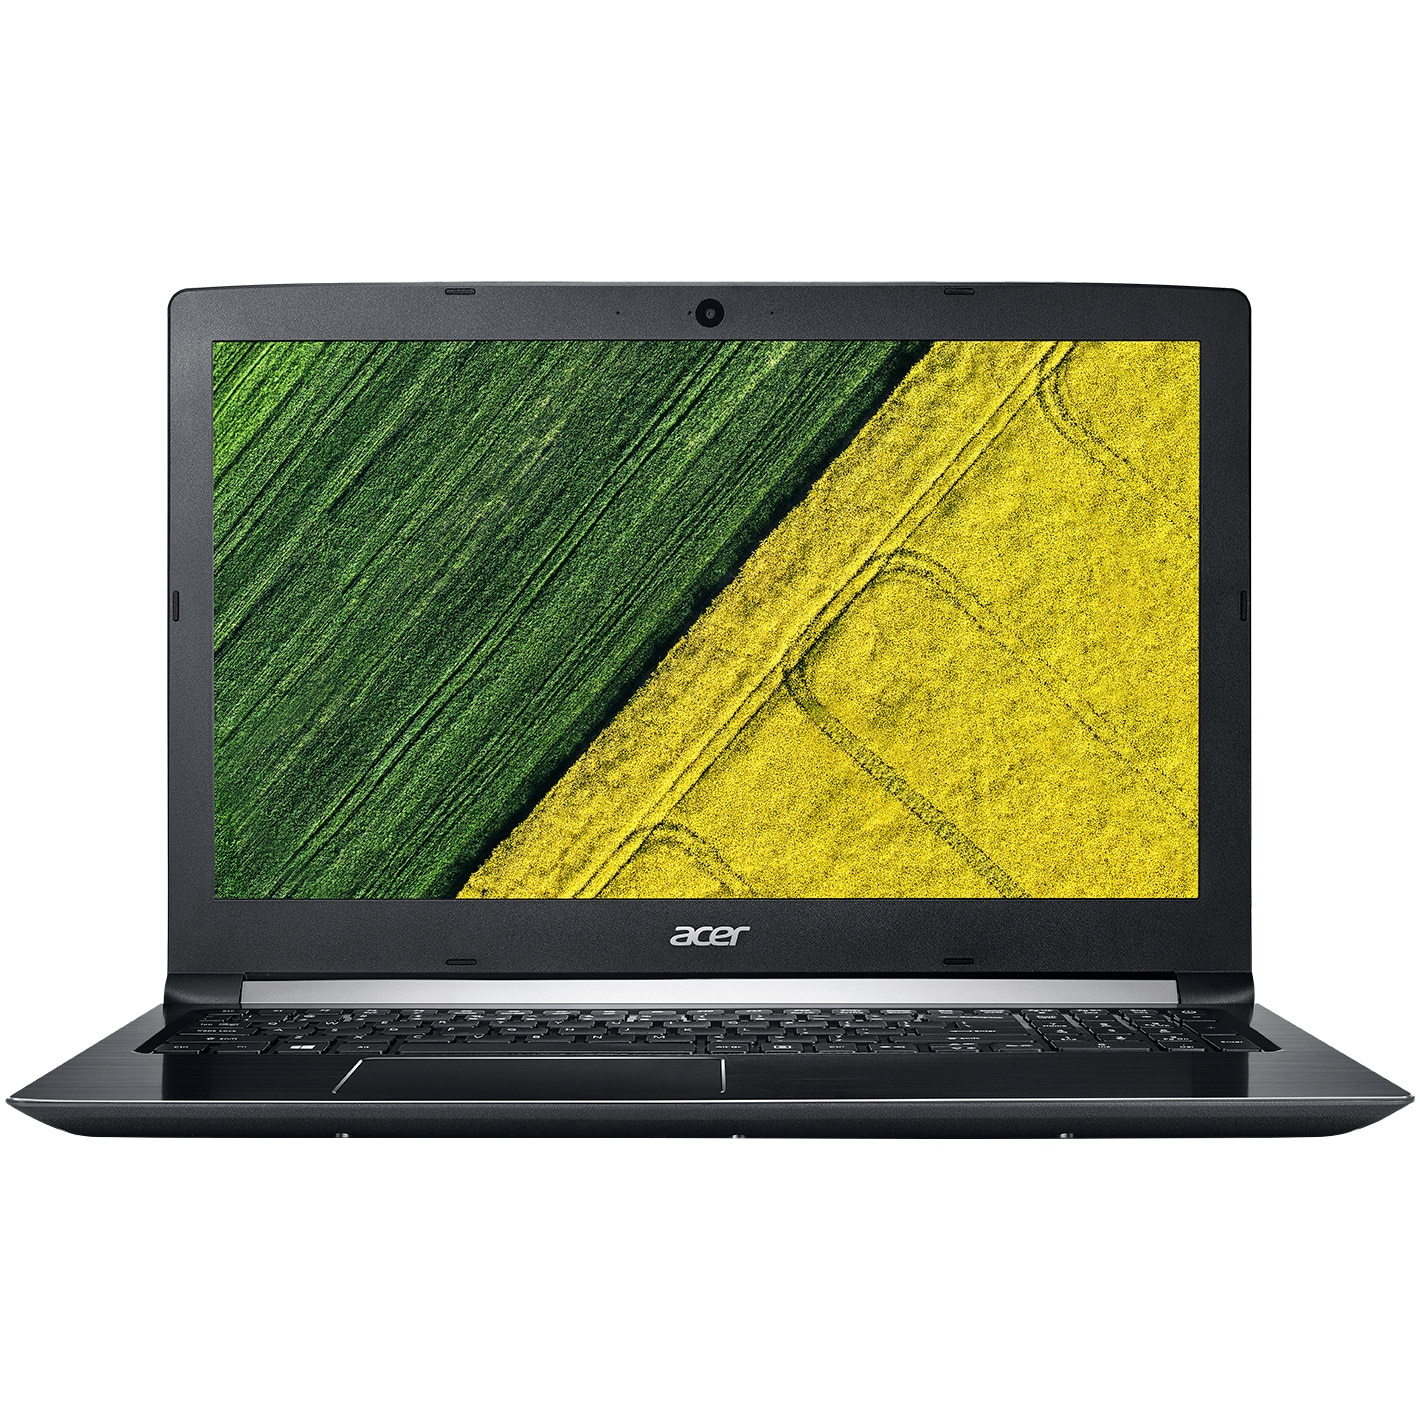 "Fotografie Laptop Acer Aspire A515-41G-F2SH cu procesor AMD Quad-Core FX 7th Gen ™ 9800P 2.70 GHz, 15.6"", Full HD, 8GB, 256GB SSD, AMD Radeon™ RX 540 2GB, Linux, Black"